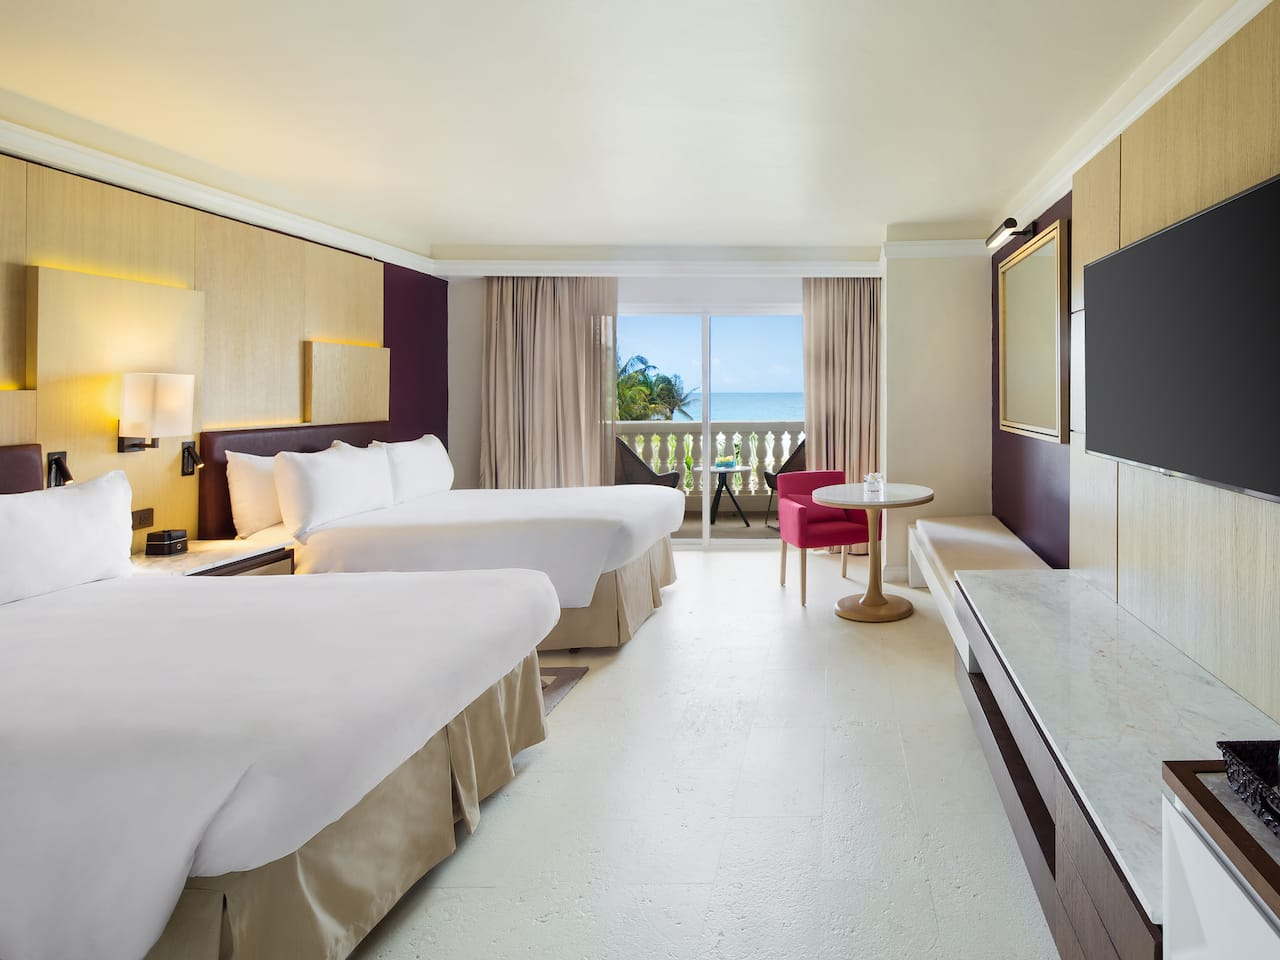 King sized bed by large patio window in resort guestroom